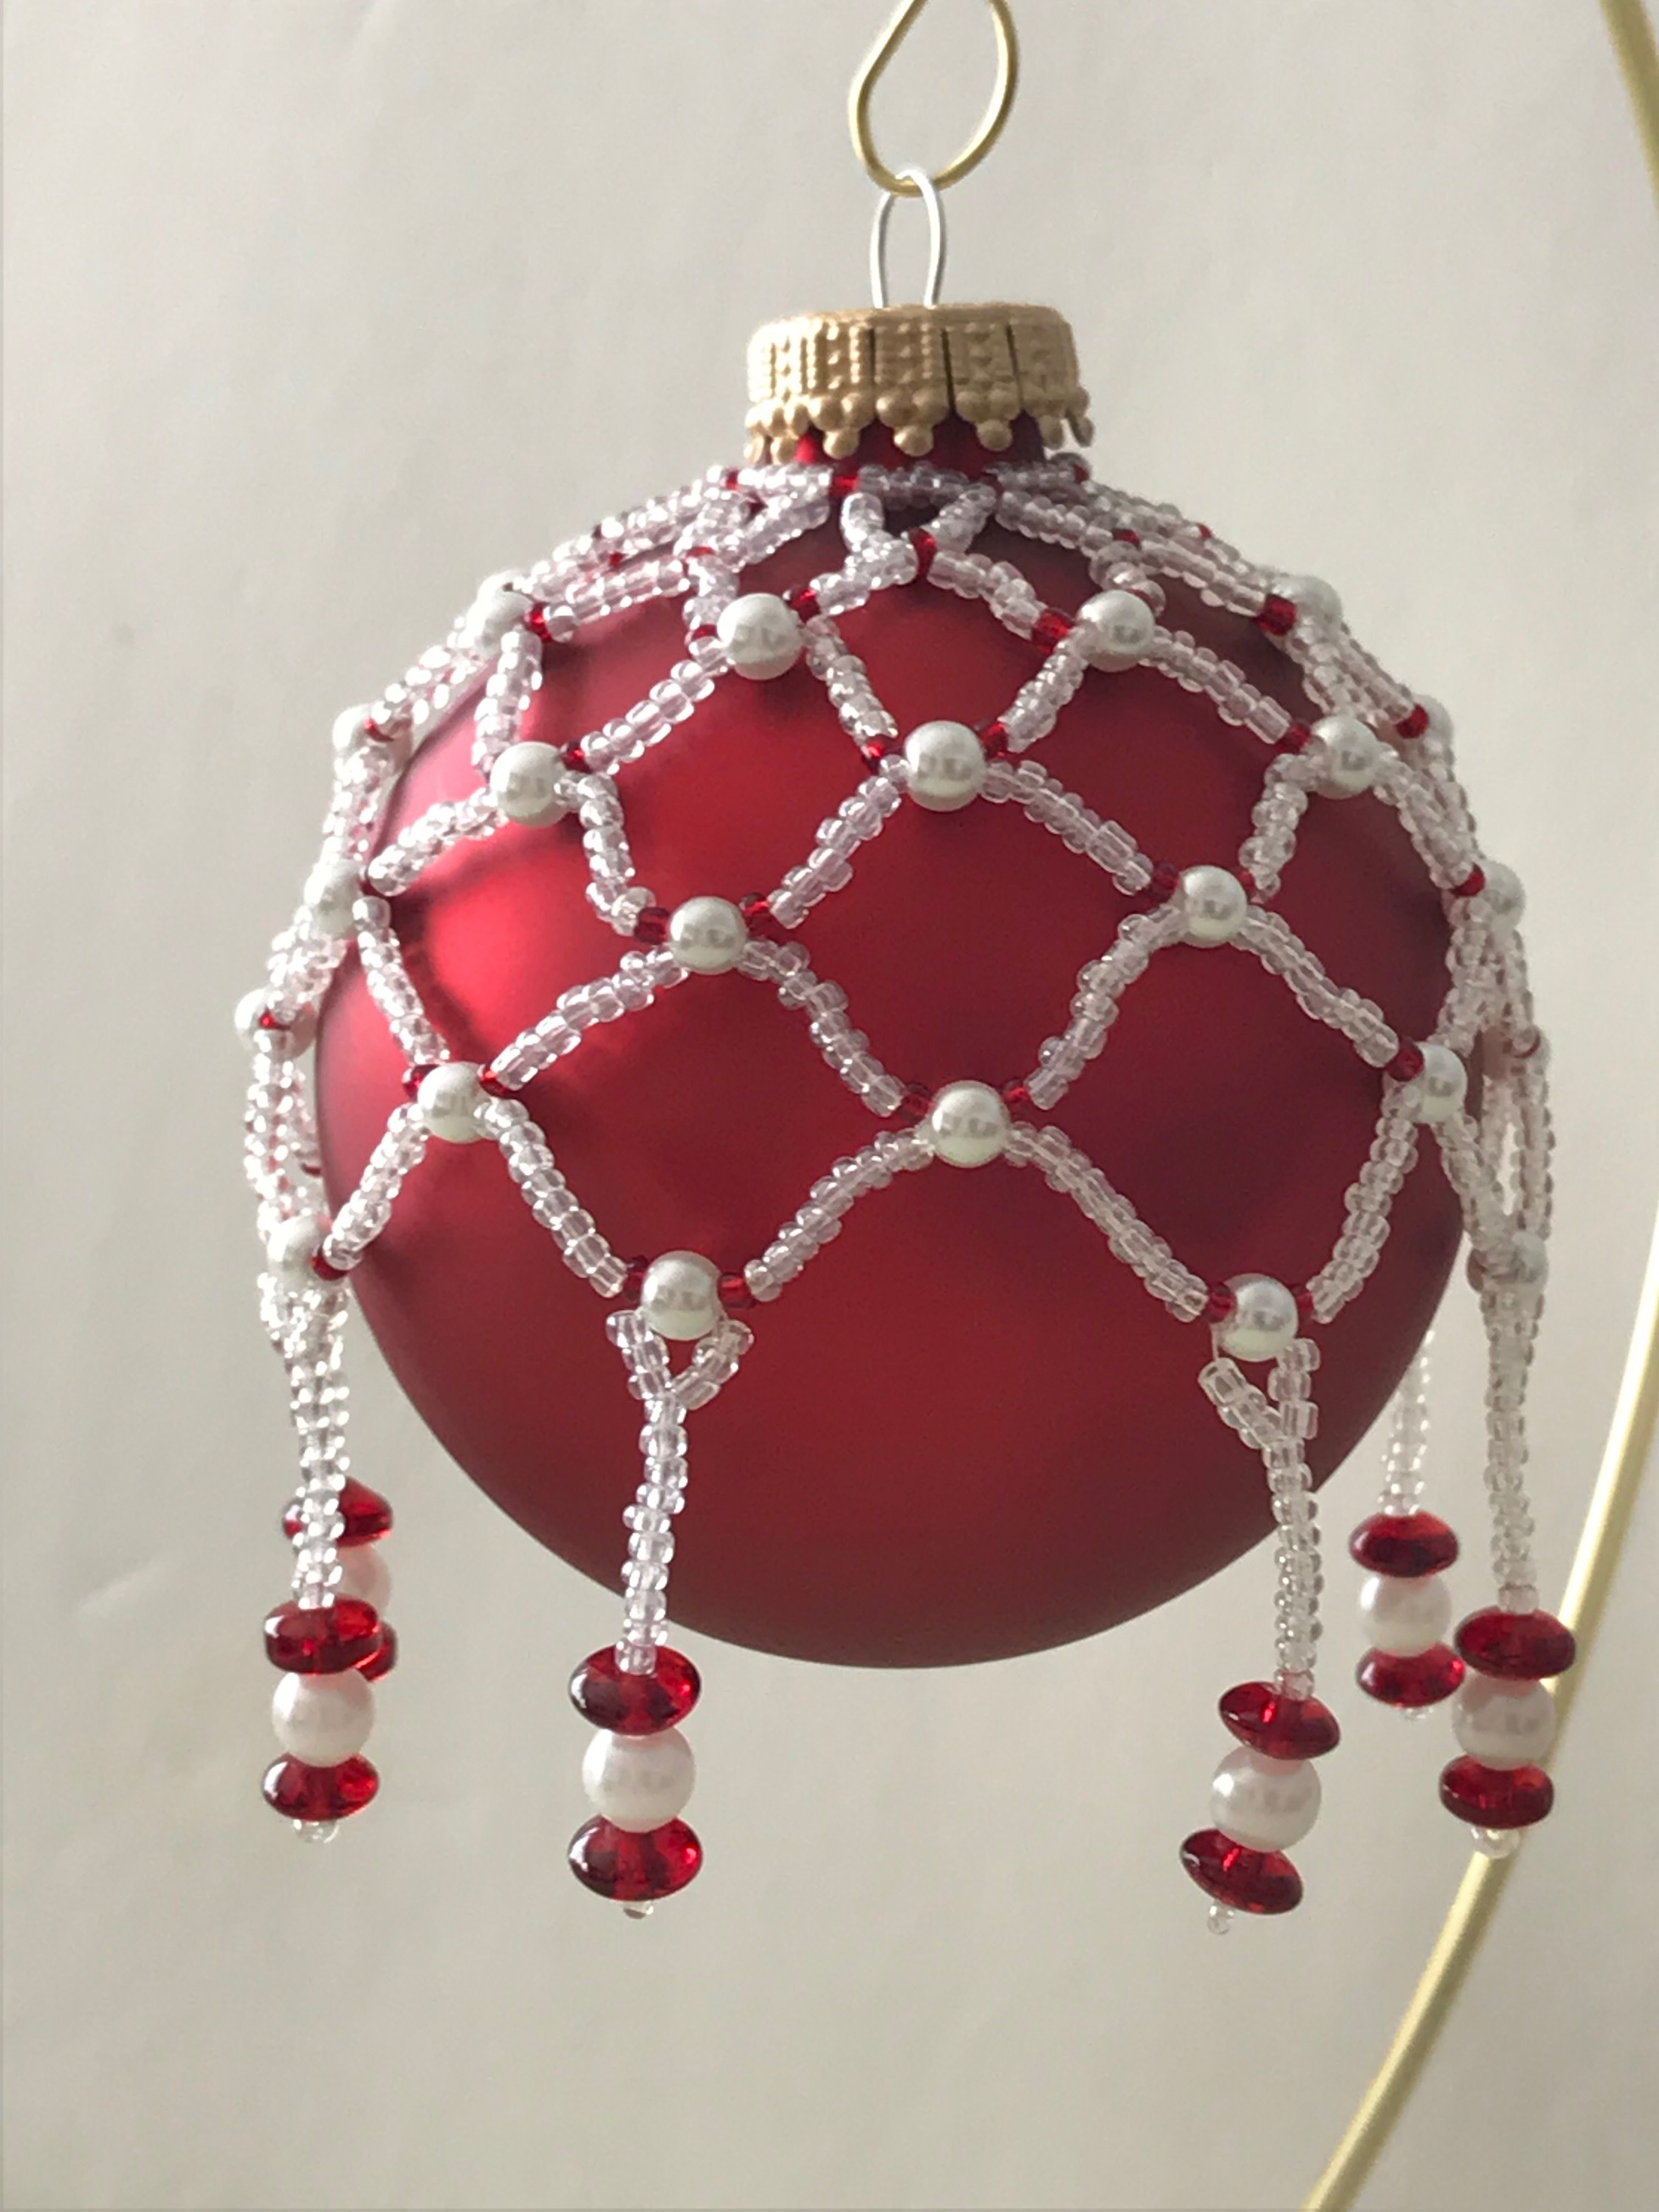 Clear Net With Pearls Beaded Ornaments Beaded Ornament Covers Beaded Christmas Ornaments